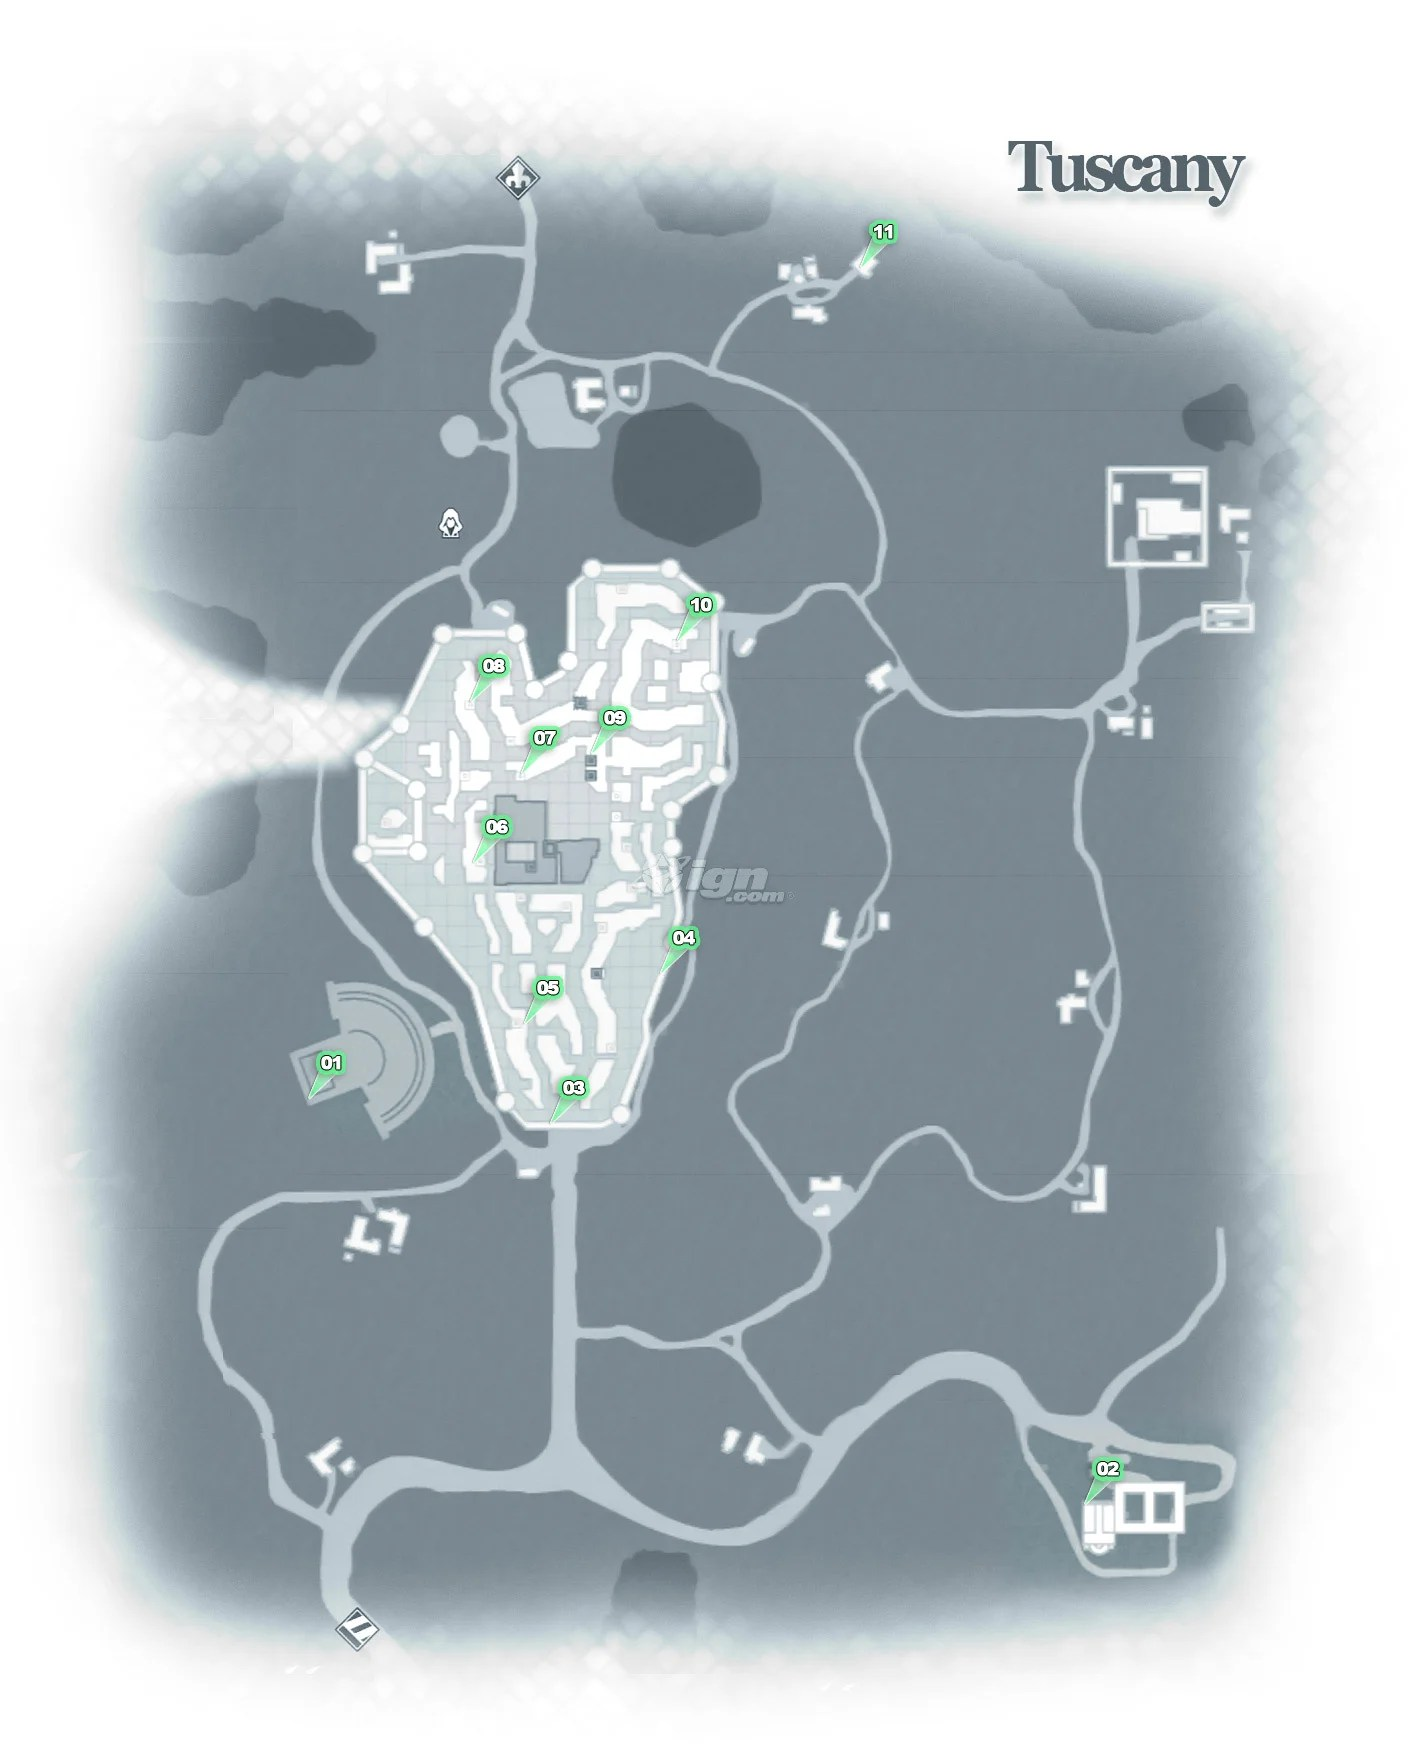 Assassin's Creed 2 Feather Locations : assassin's, creed, feather, locations, Tuscany, Assassin's, Creed, Guide